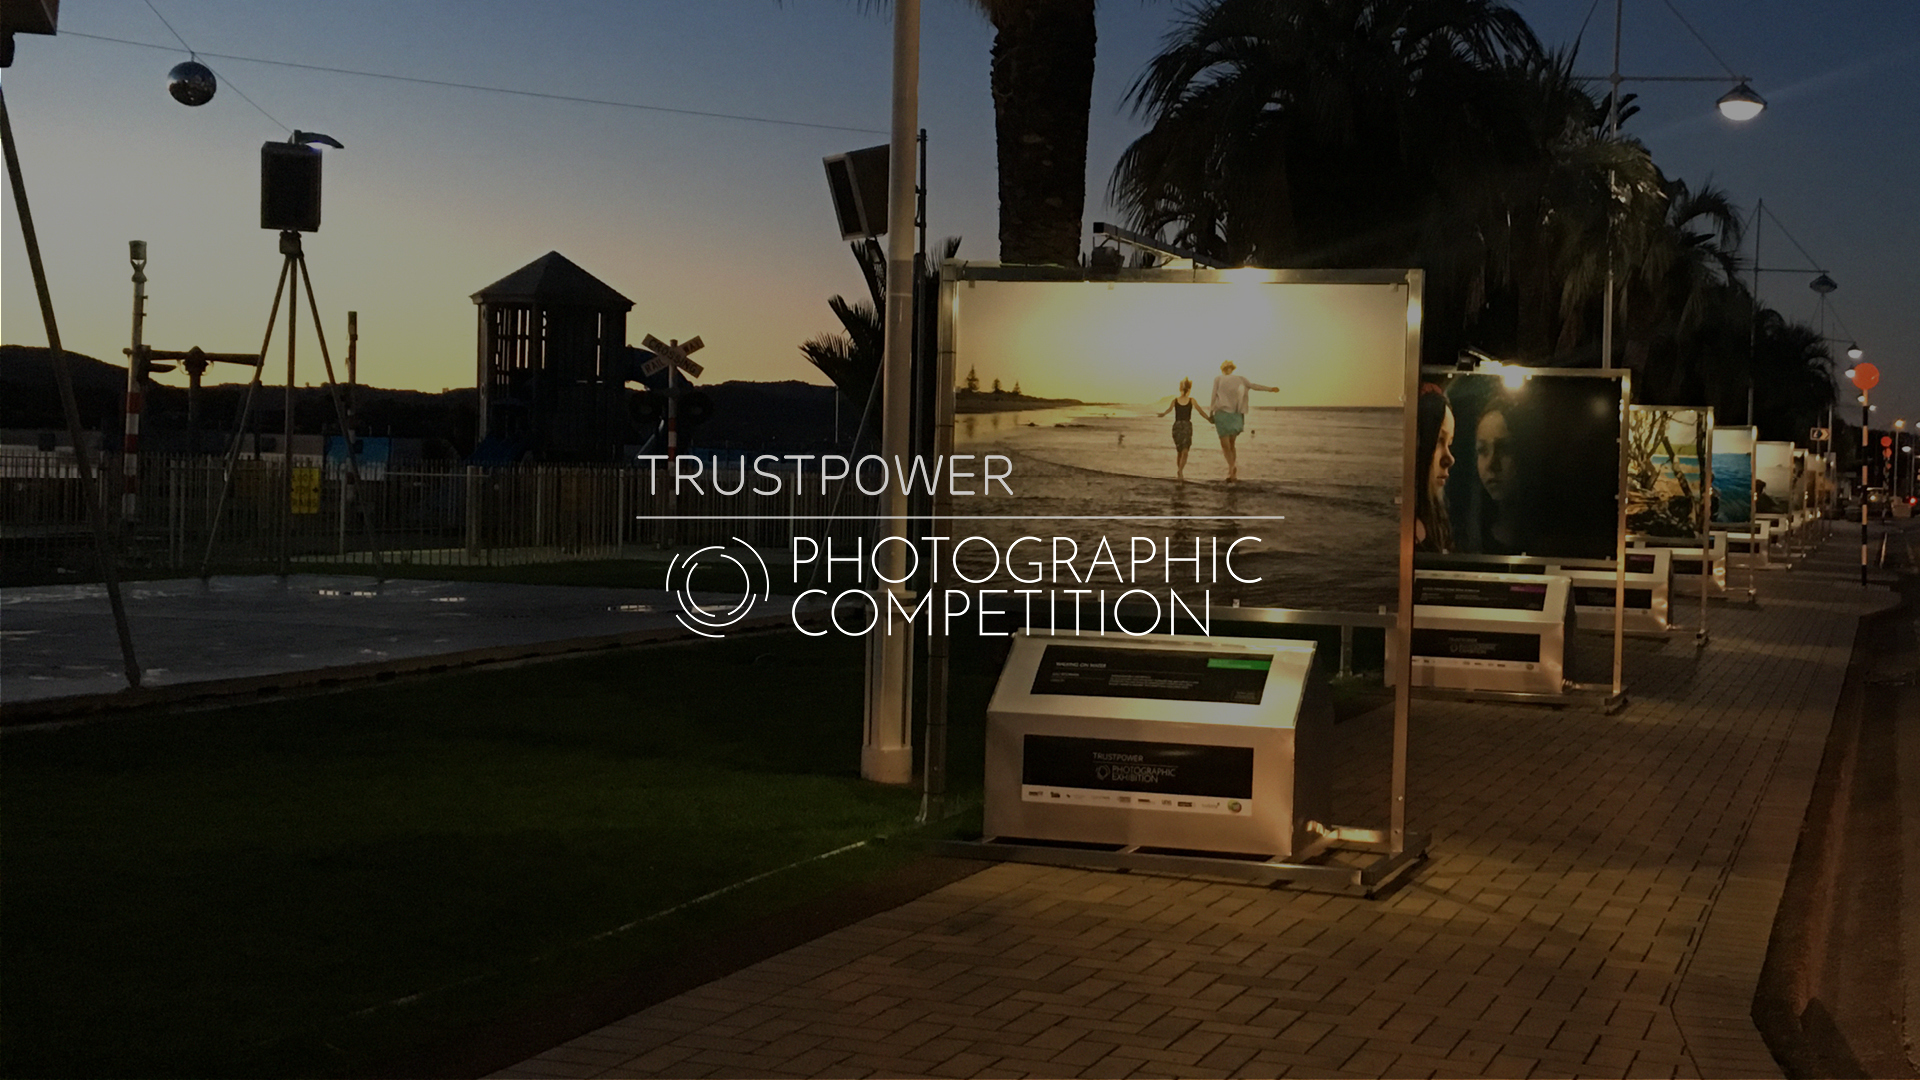 Entries closed - Trustpower Photographic Competition